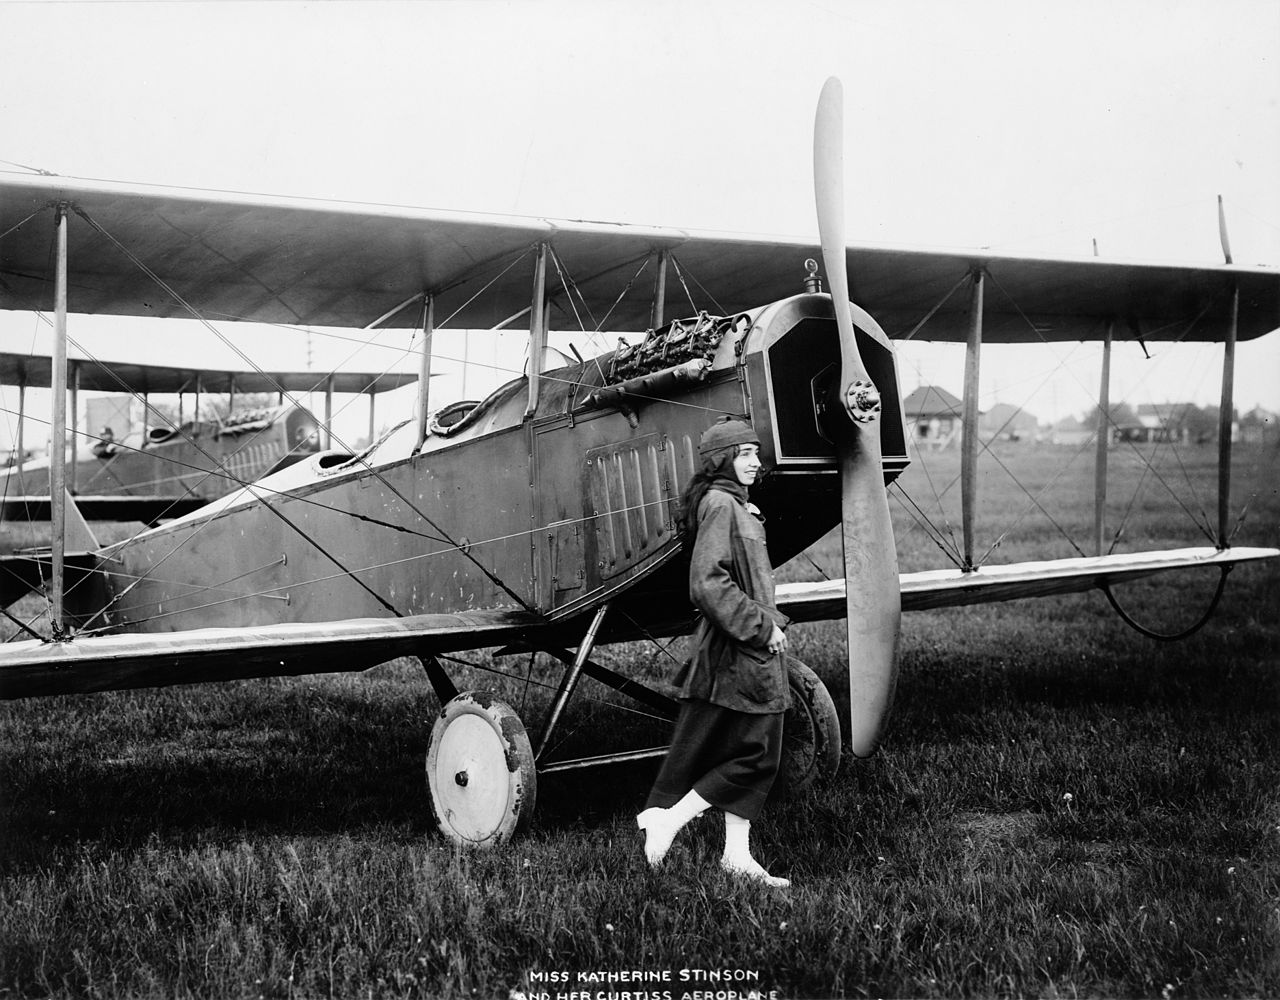 The story of Katherine Stinson the first woman (and only the fourth American pilot) to perform a loop